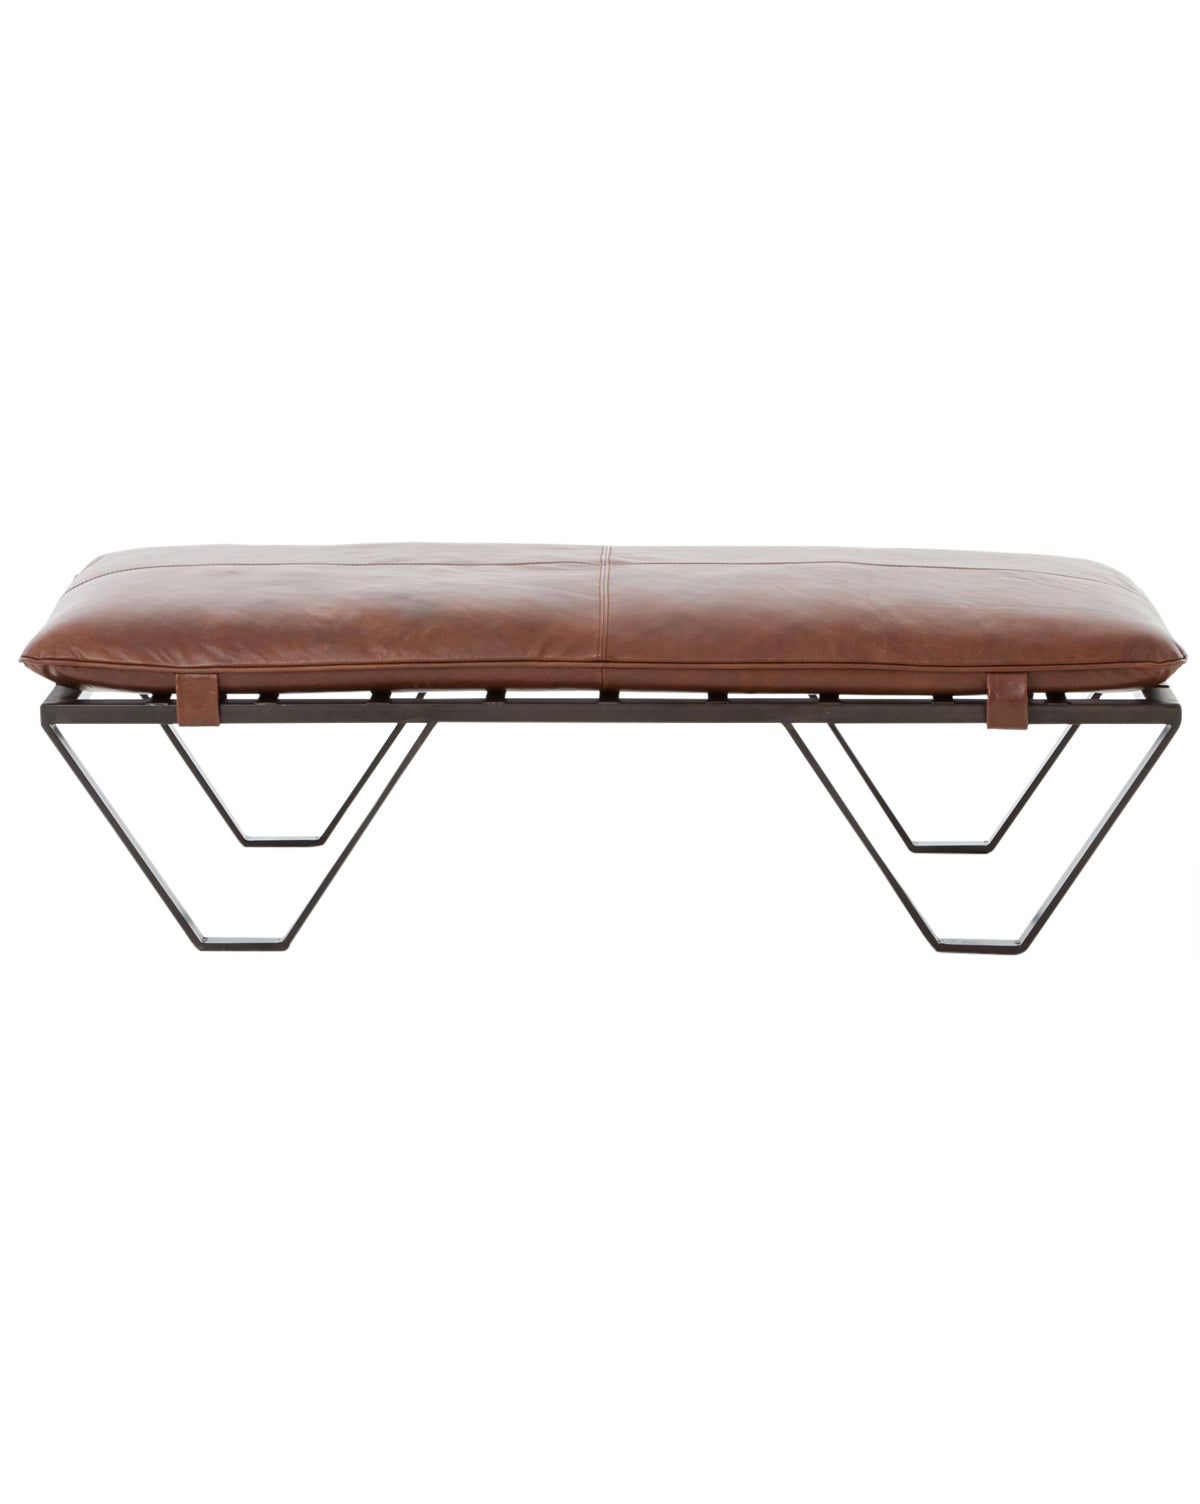 Miraculous Drew Ottoman Leather Furniture Mcgee Co Dailytribune Chair Design For Home Dailytribuneorg